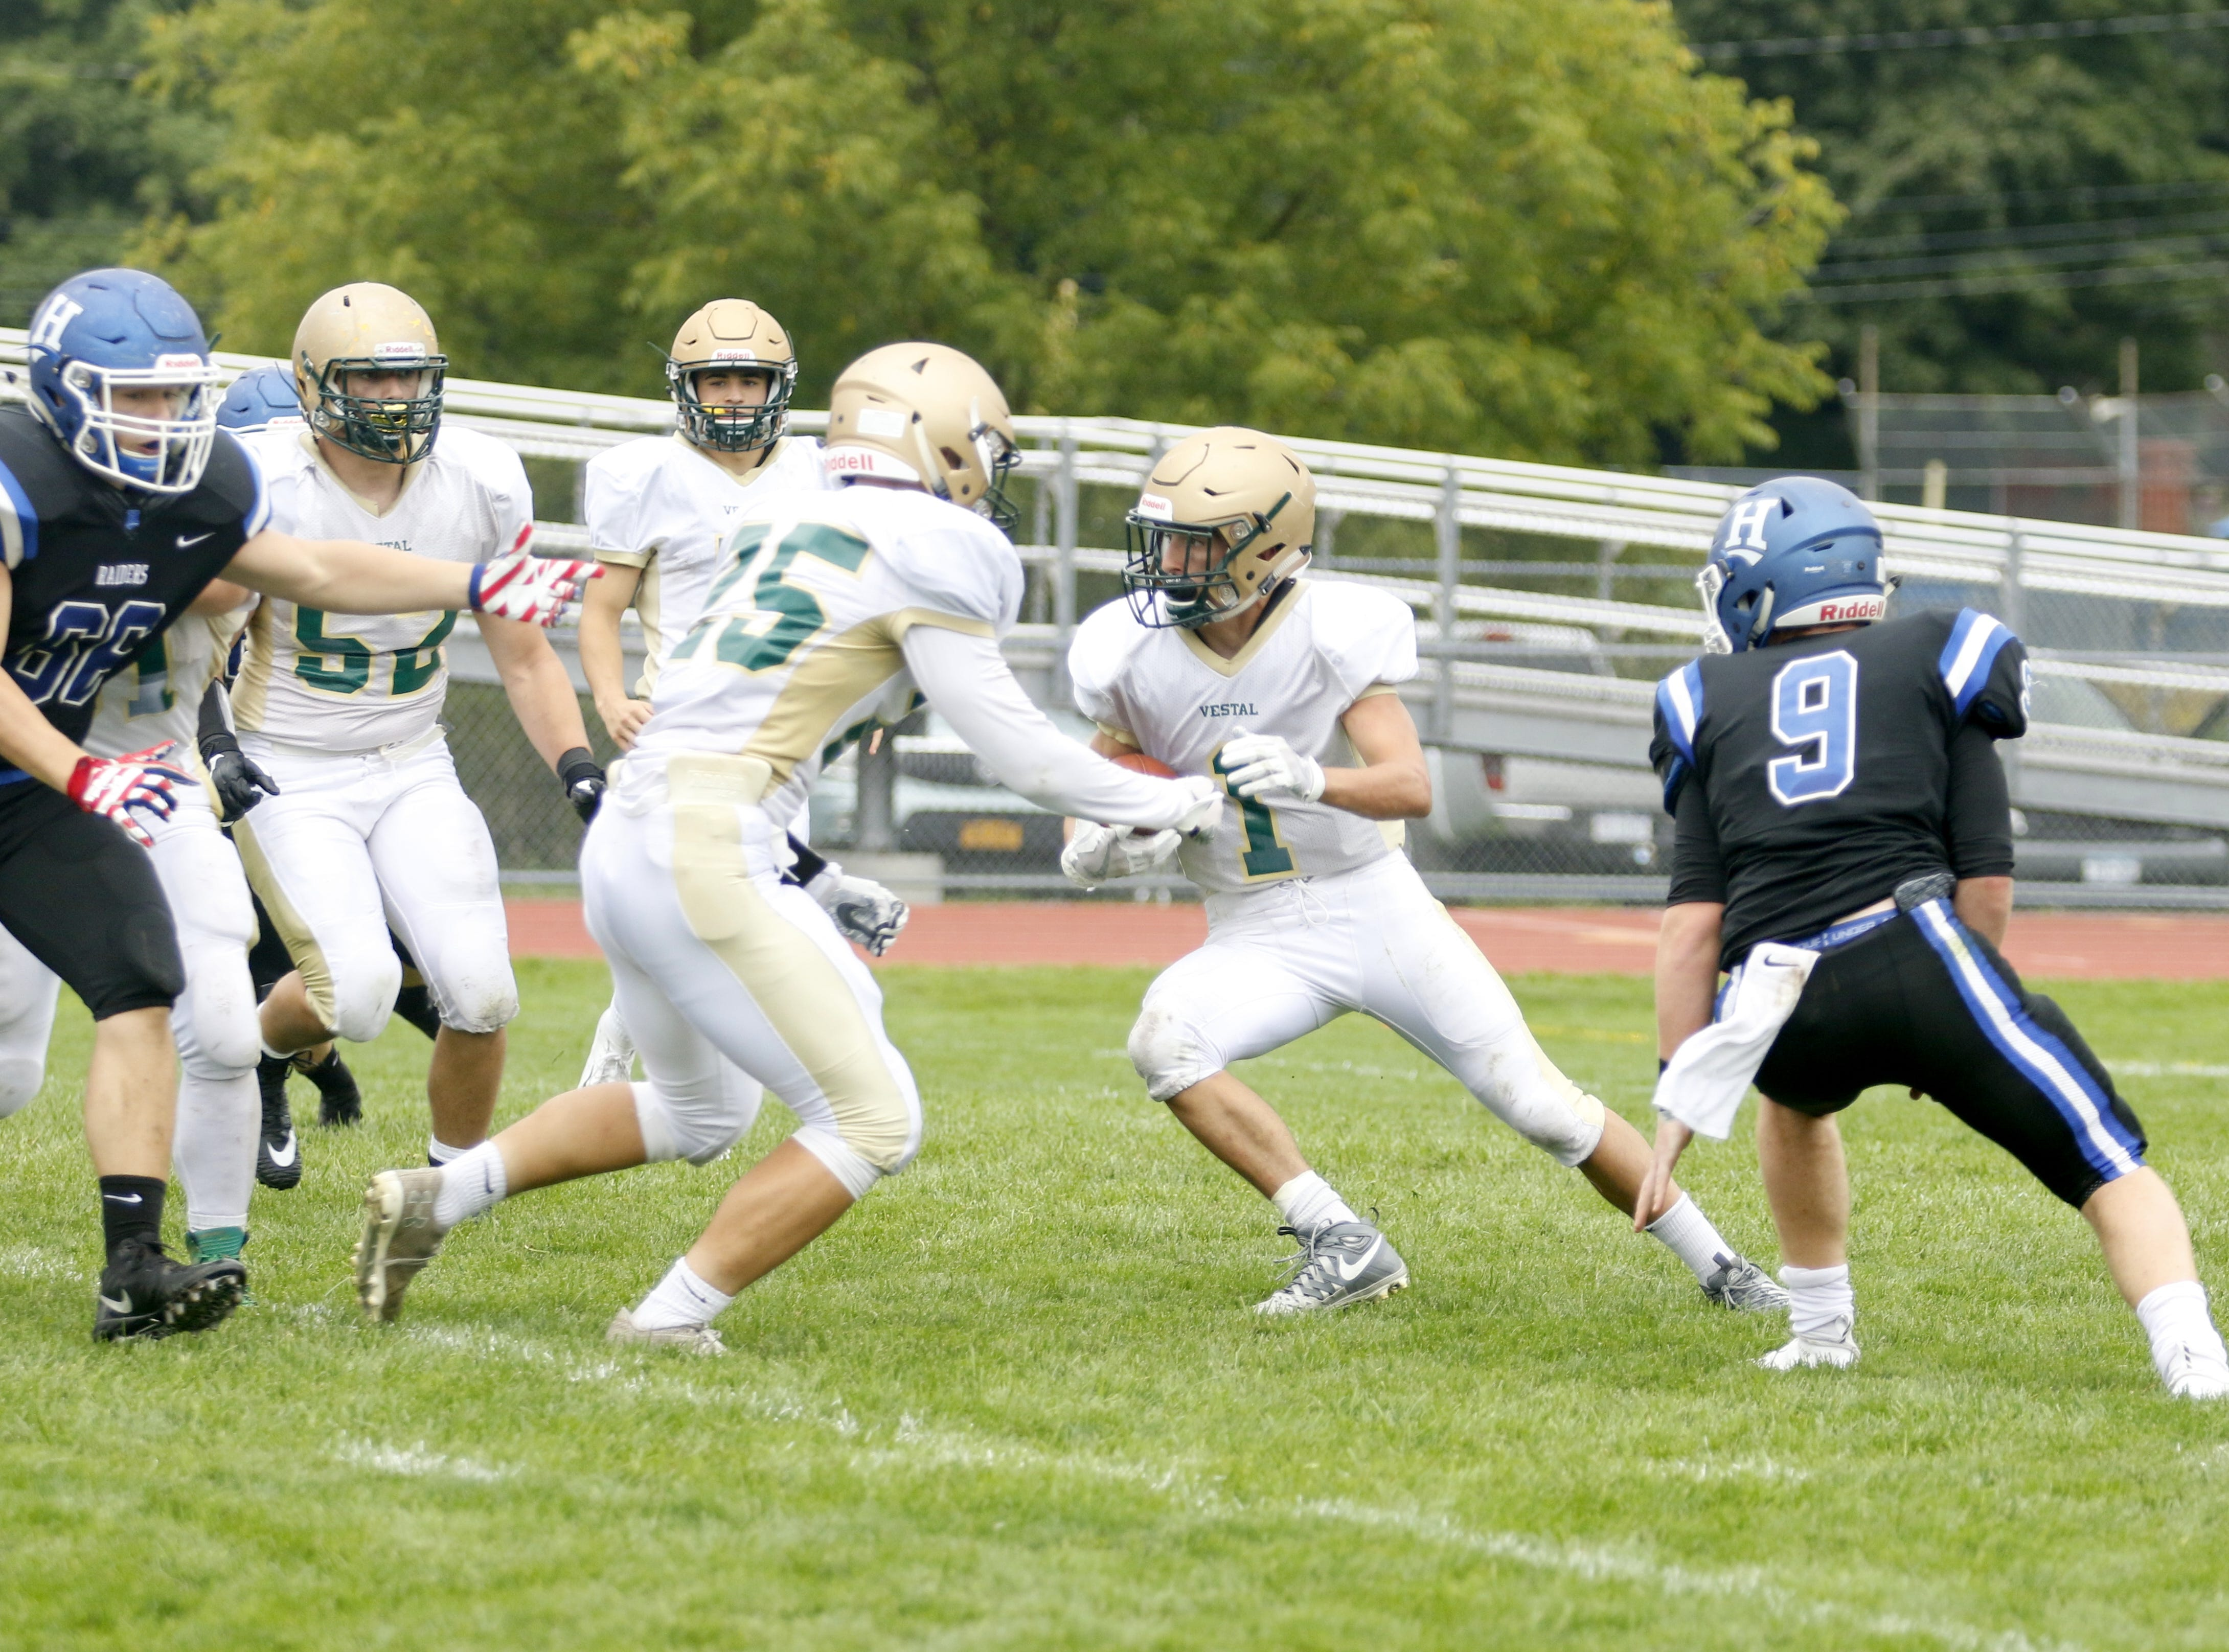 Horseheads was a 13-6 winner over Vestal in football Sept. 1 at Horseheads High School.